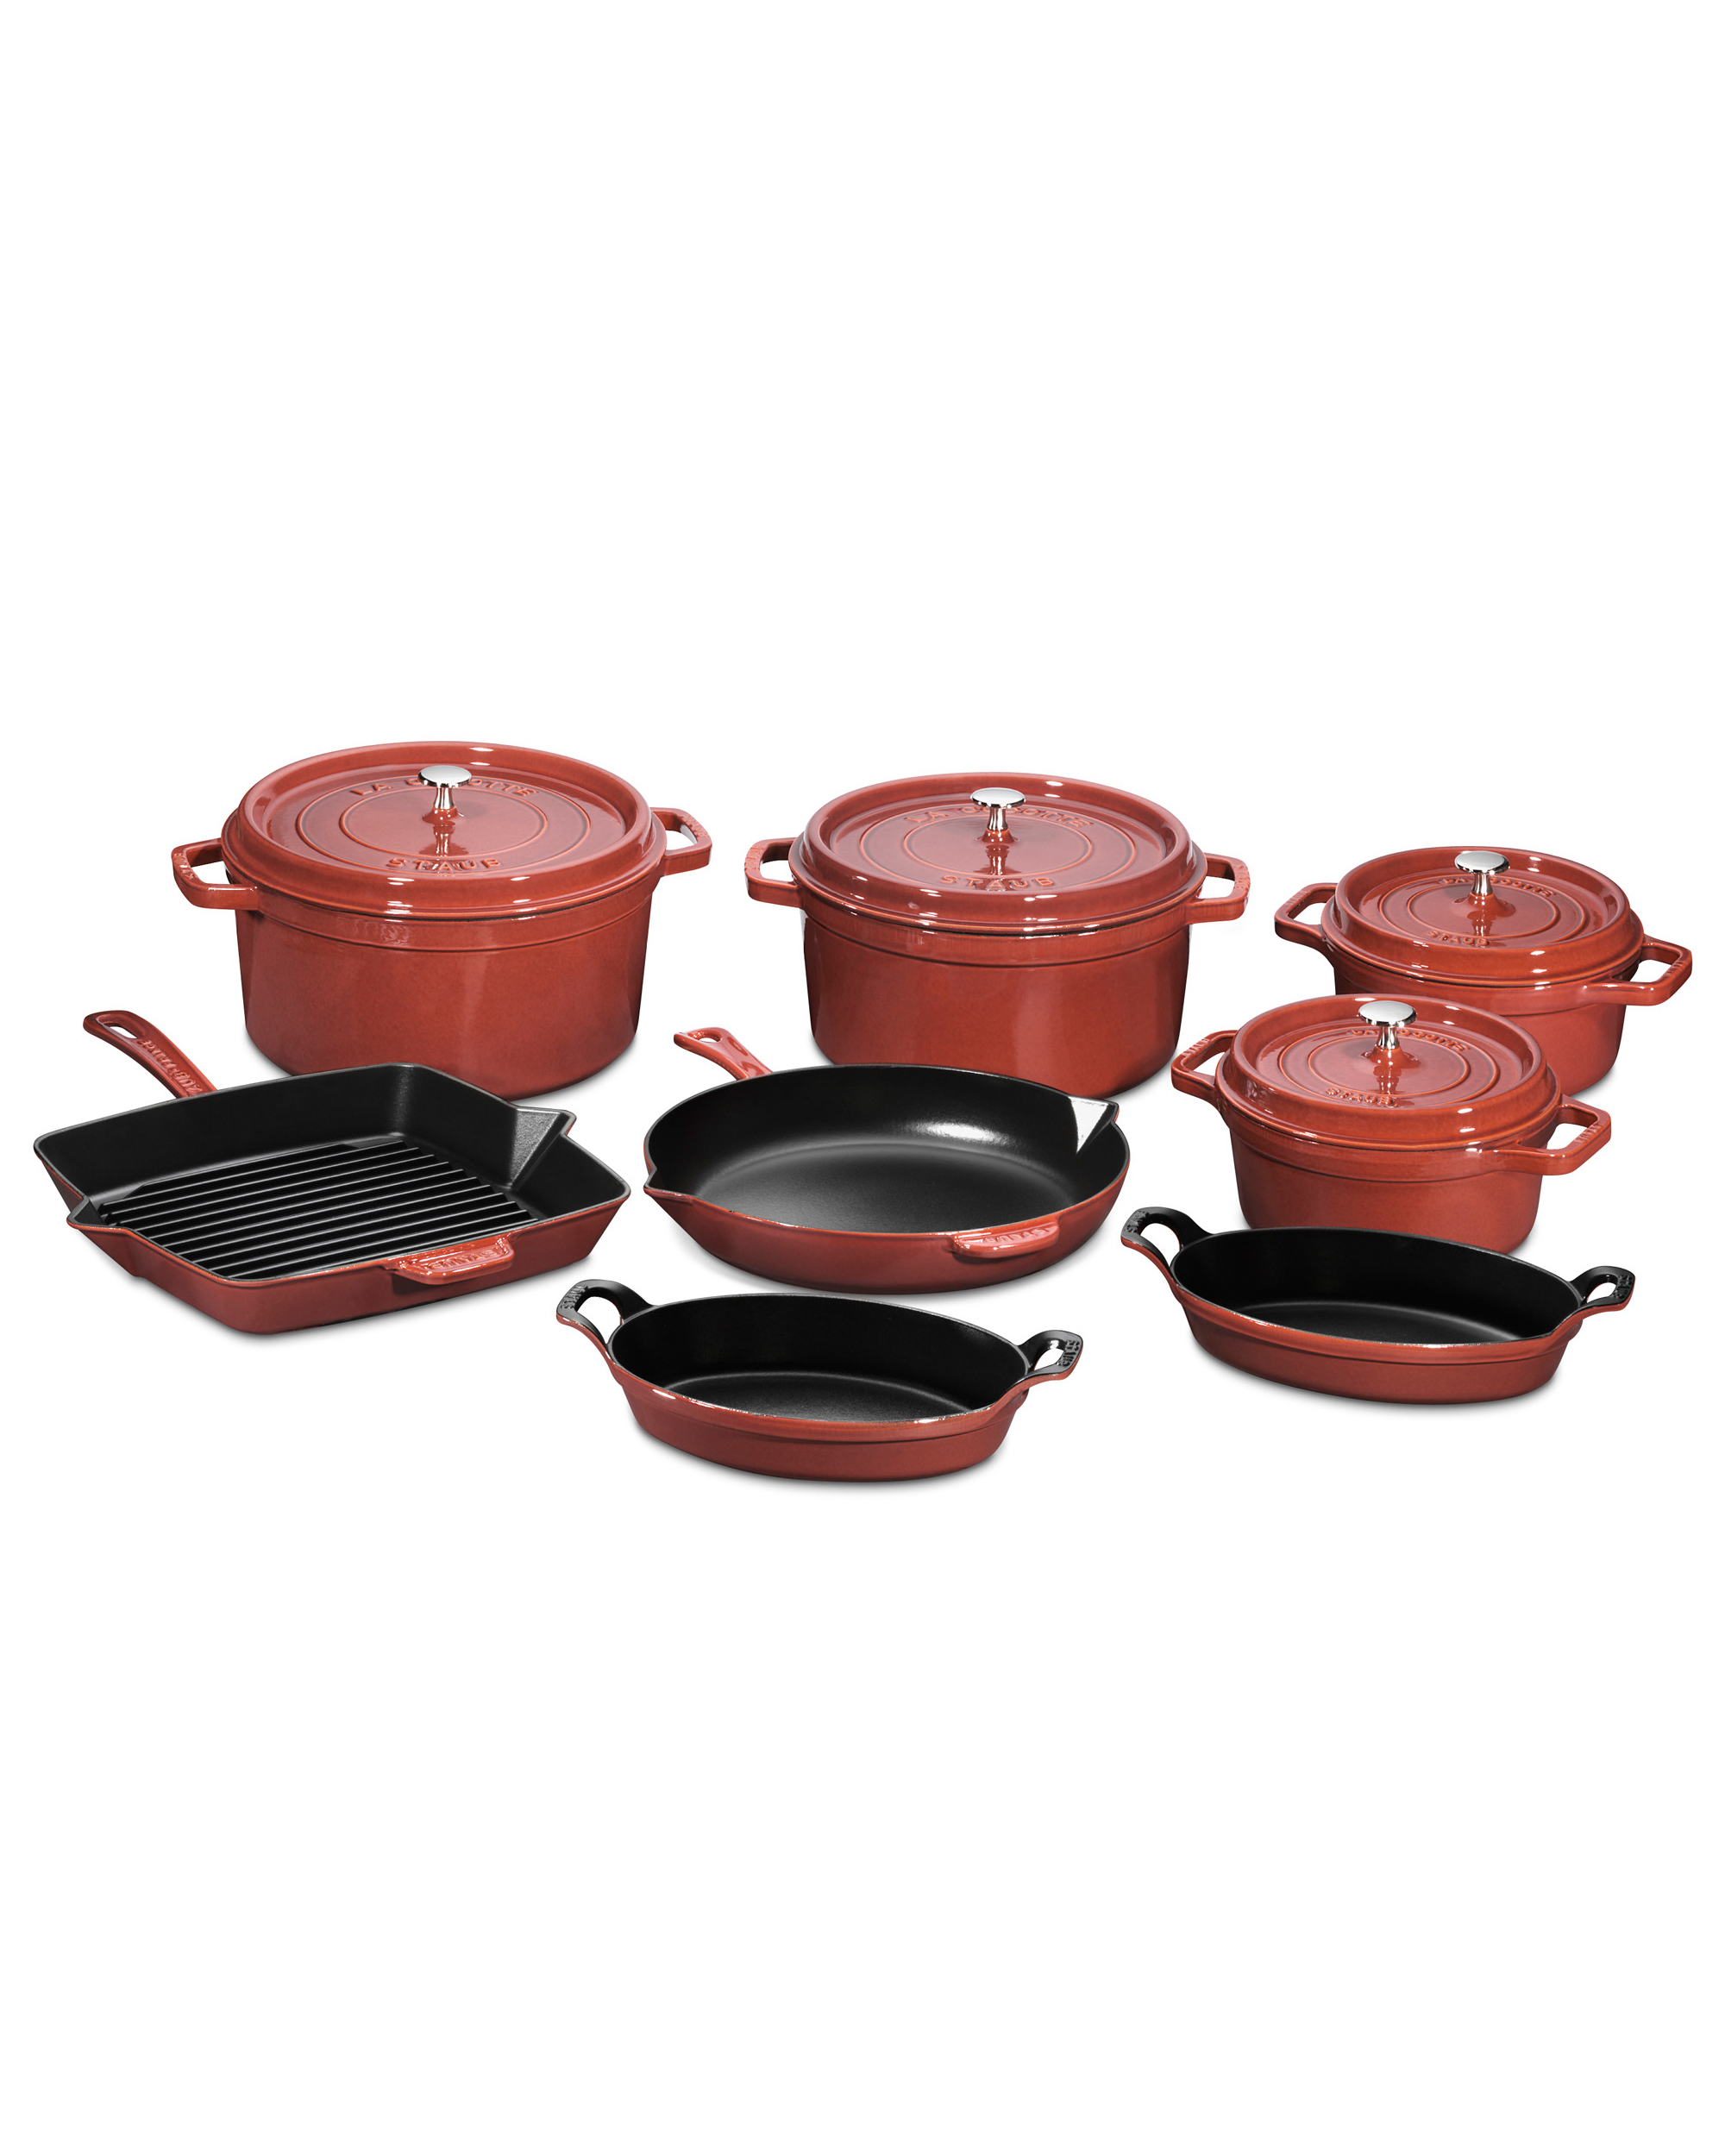 Staub Cast-Iron 12 Piece Set